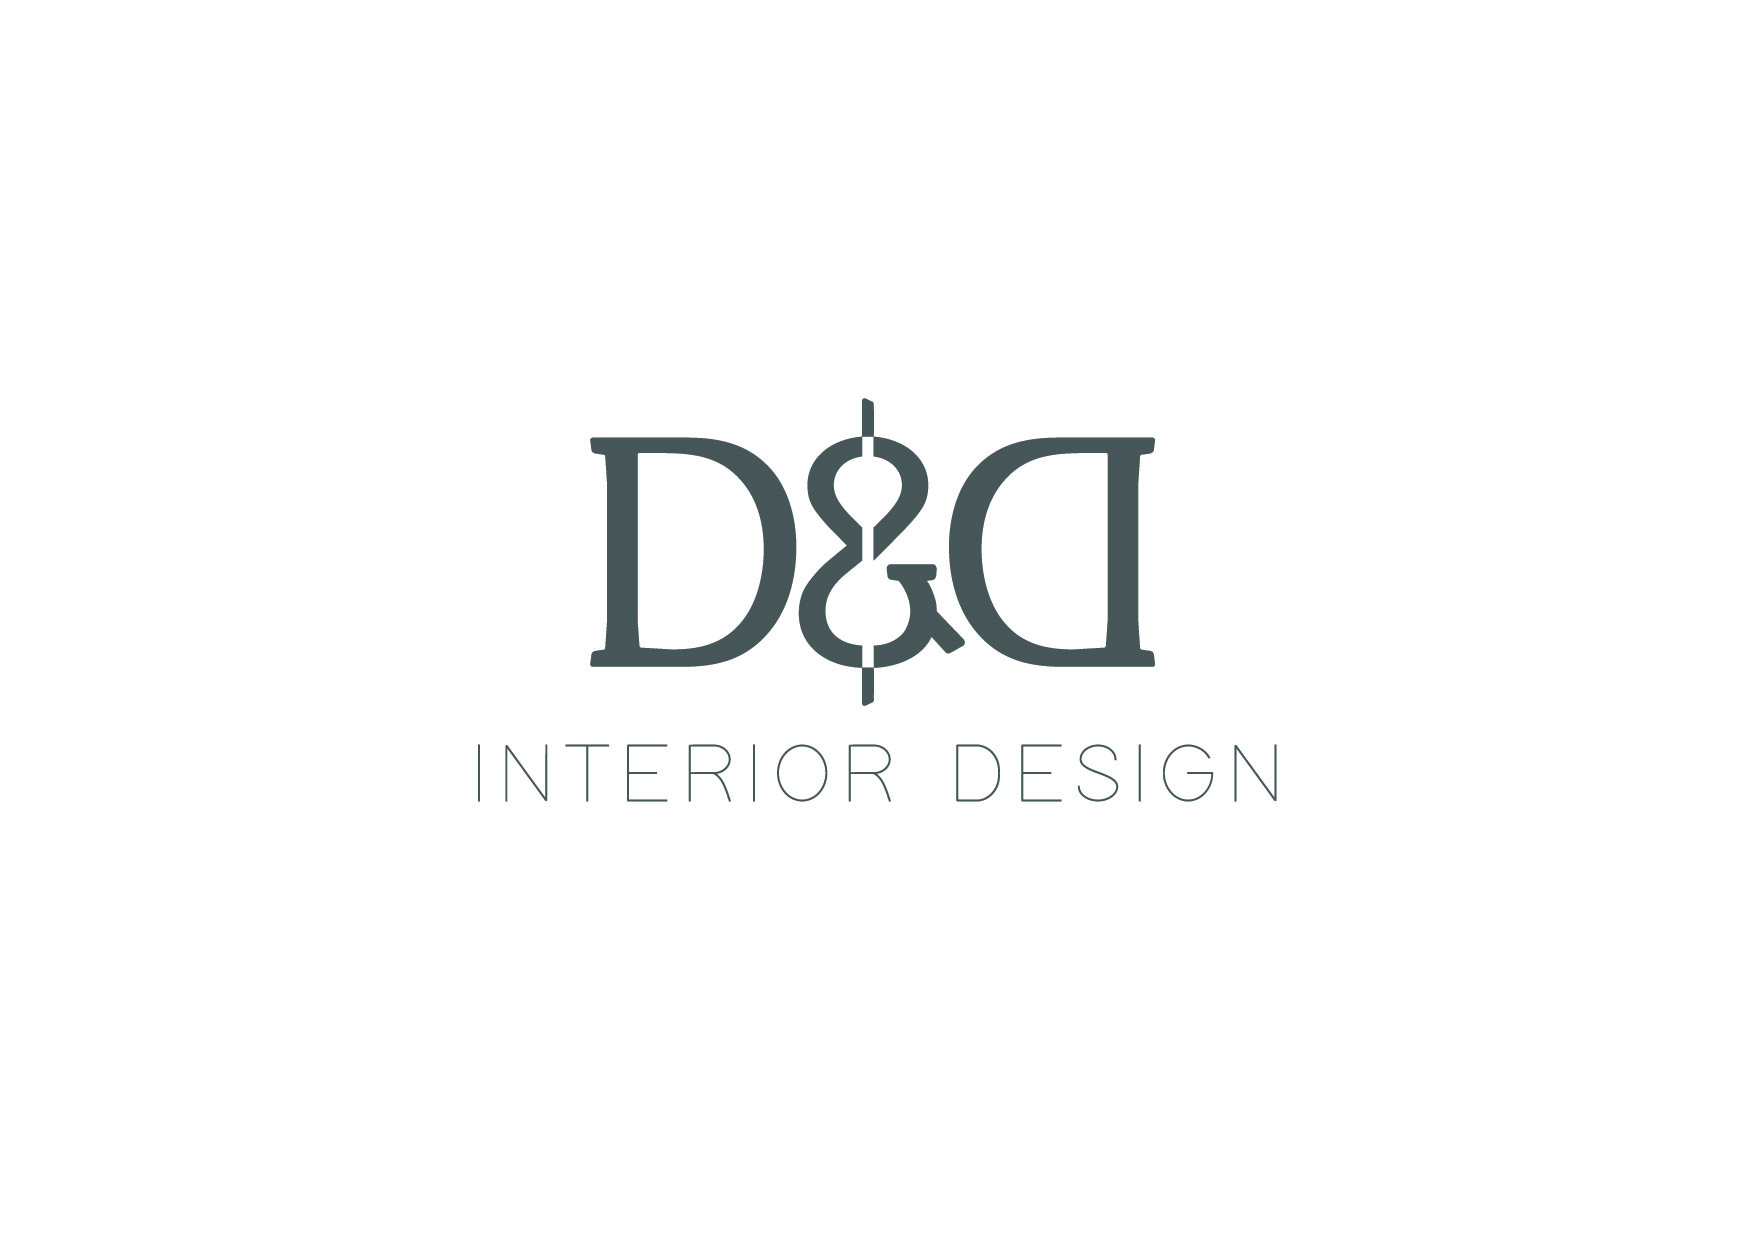 D&D - Interior Design